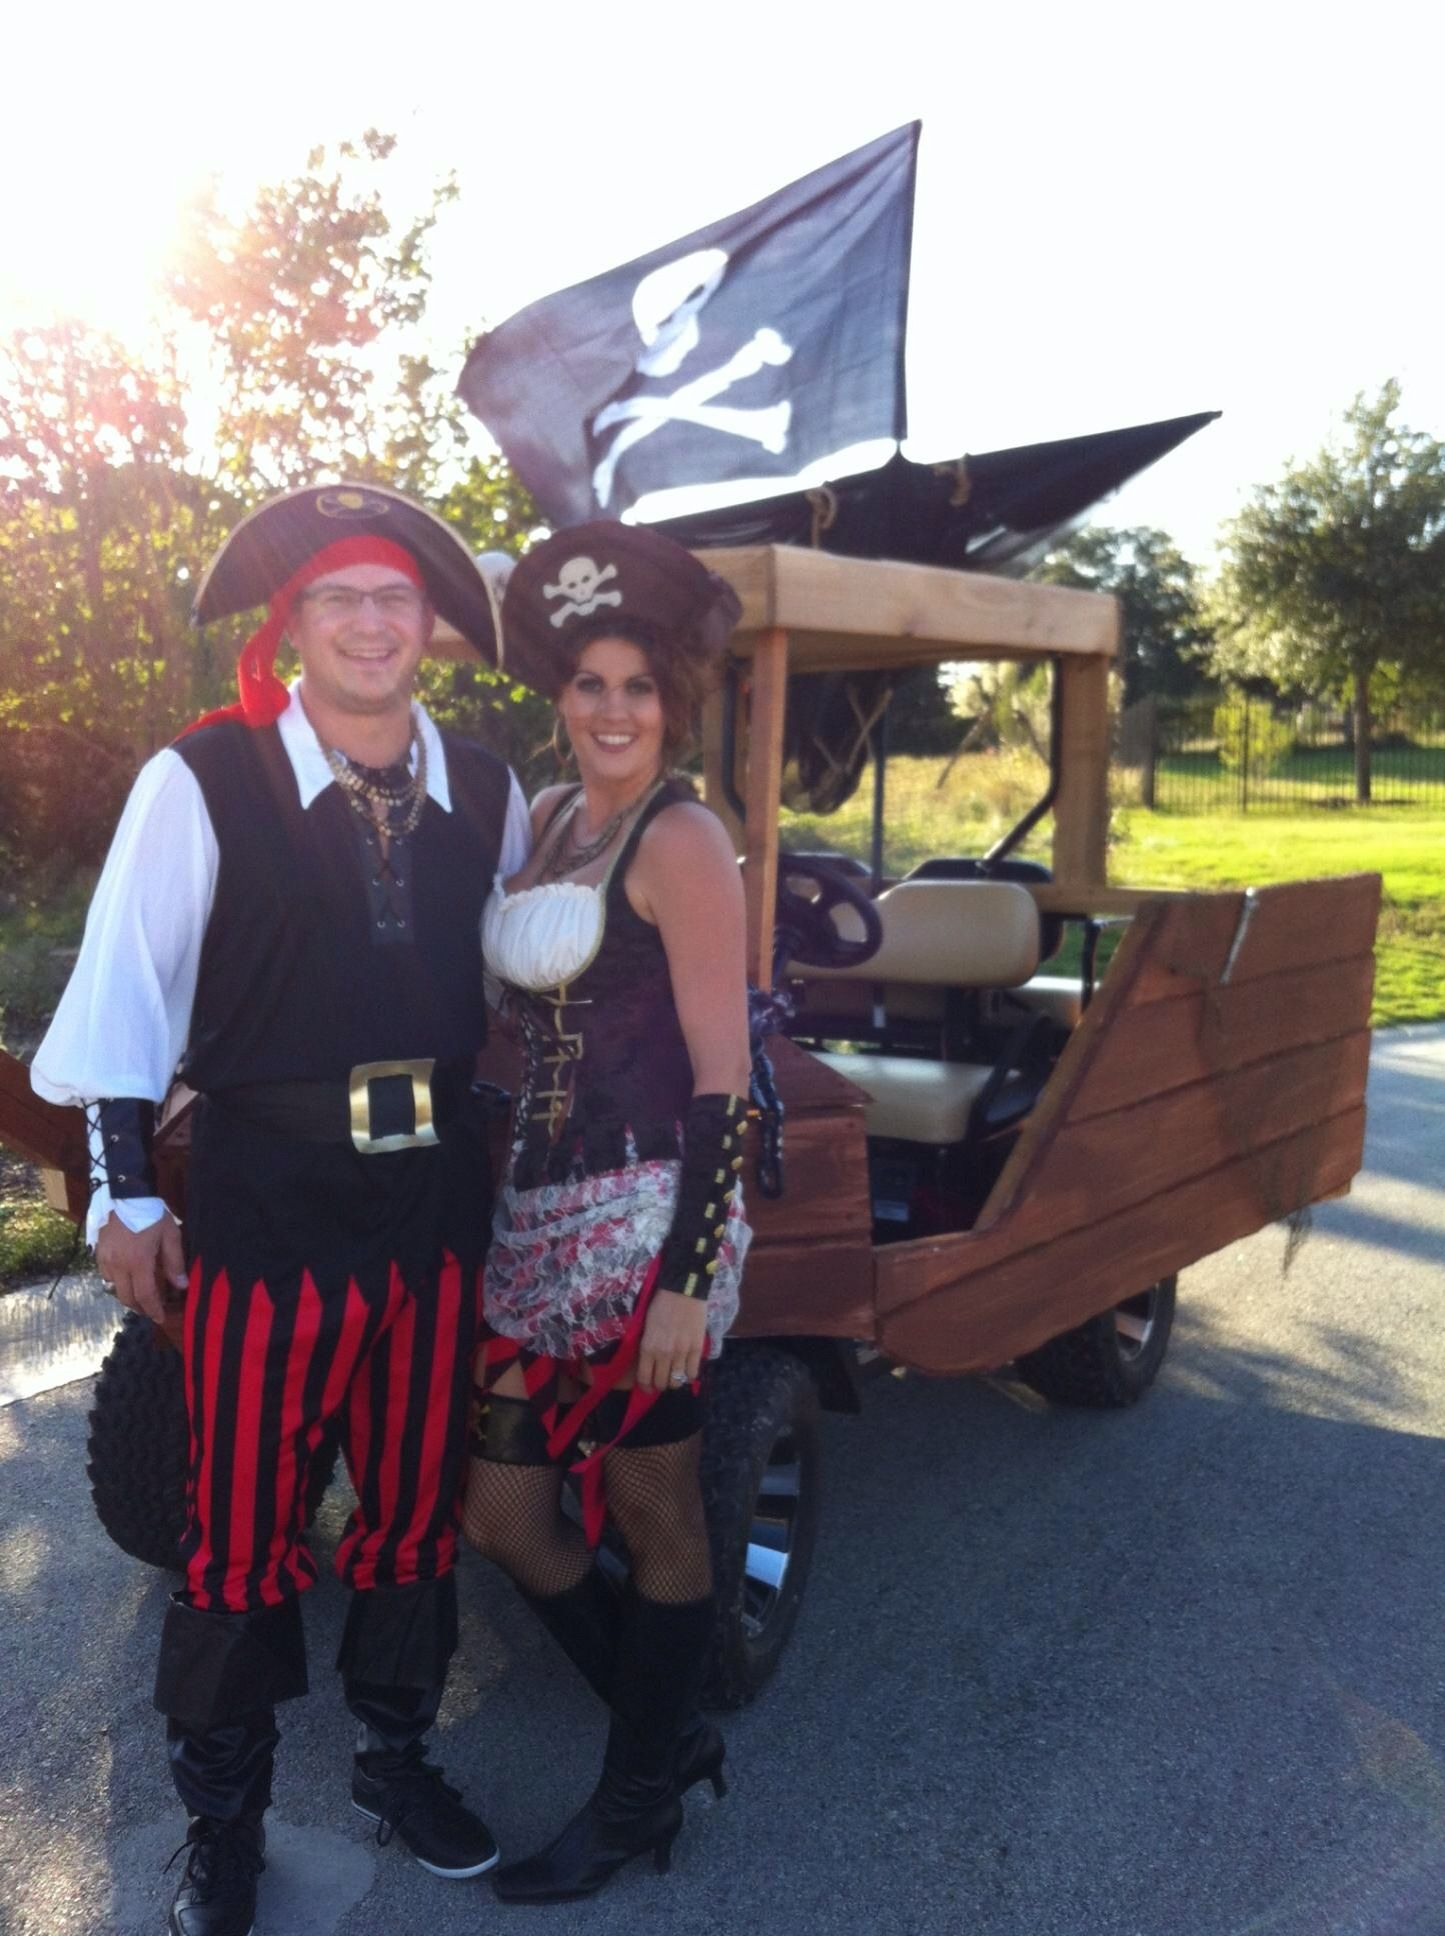 We transformed our golf cart into a Pirate Ship! So neat cruising ...